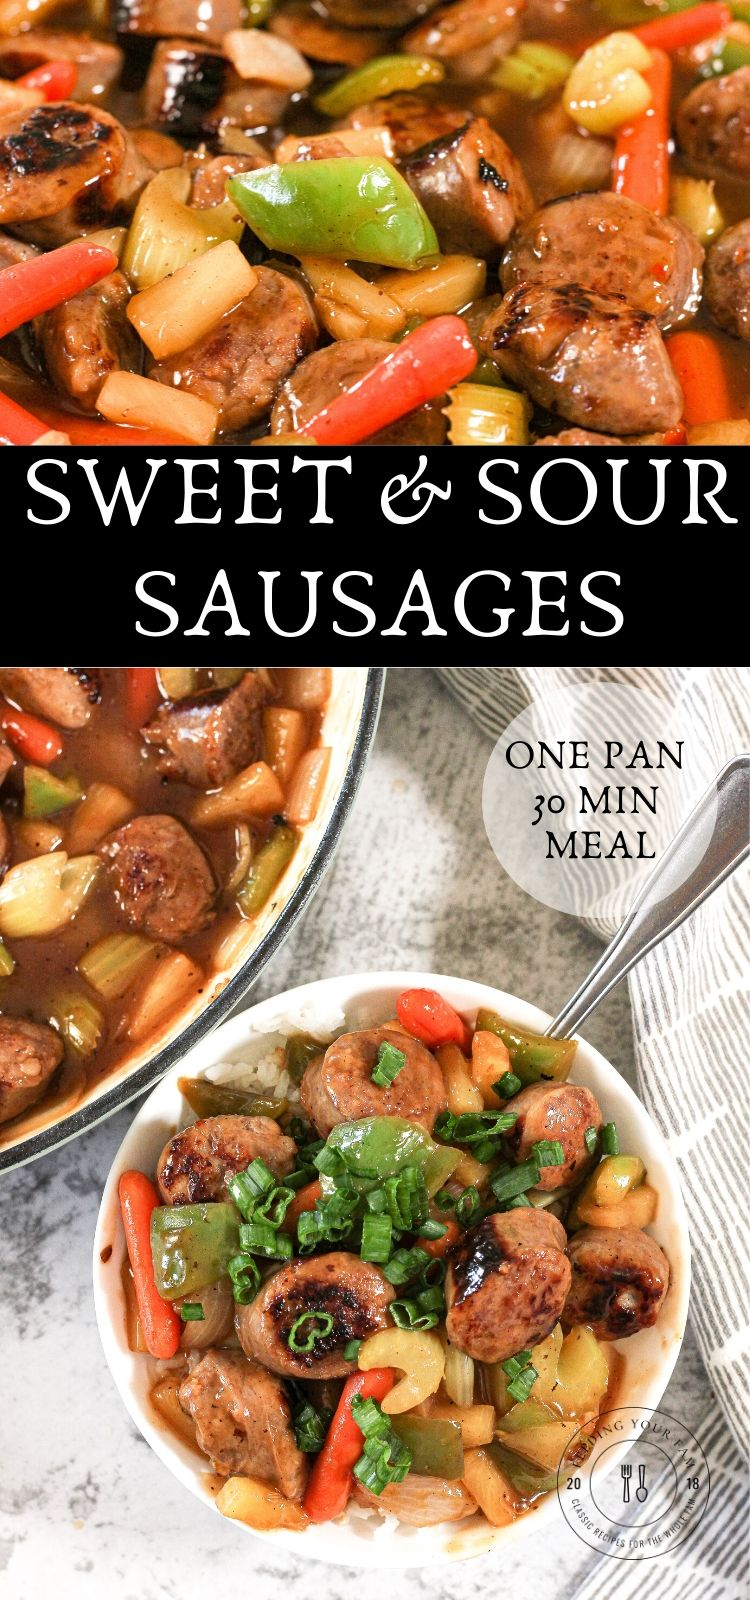 images of sweet and sour sausages